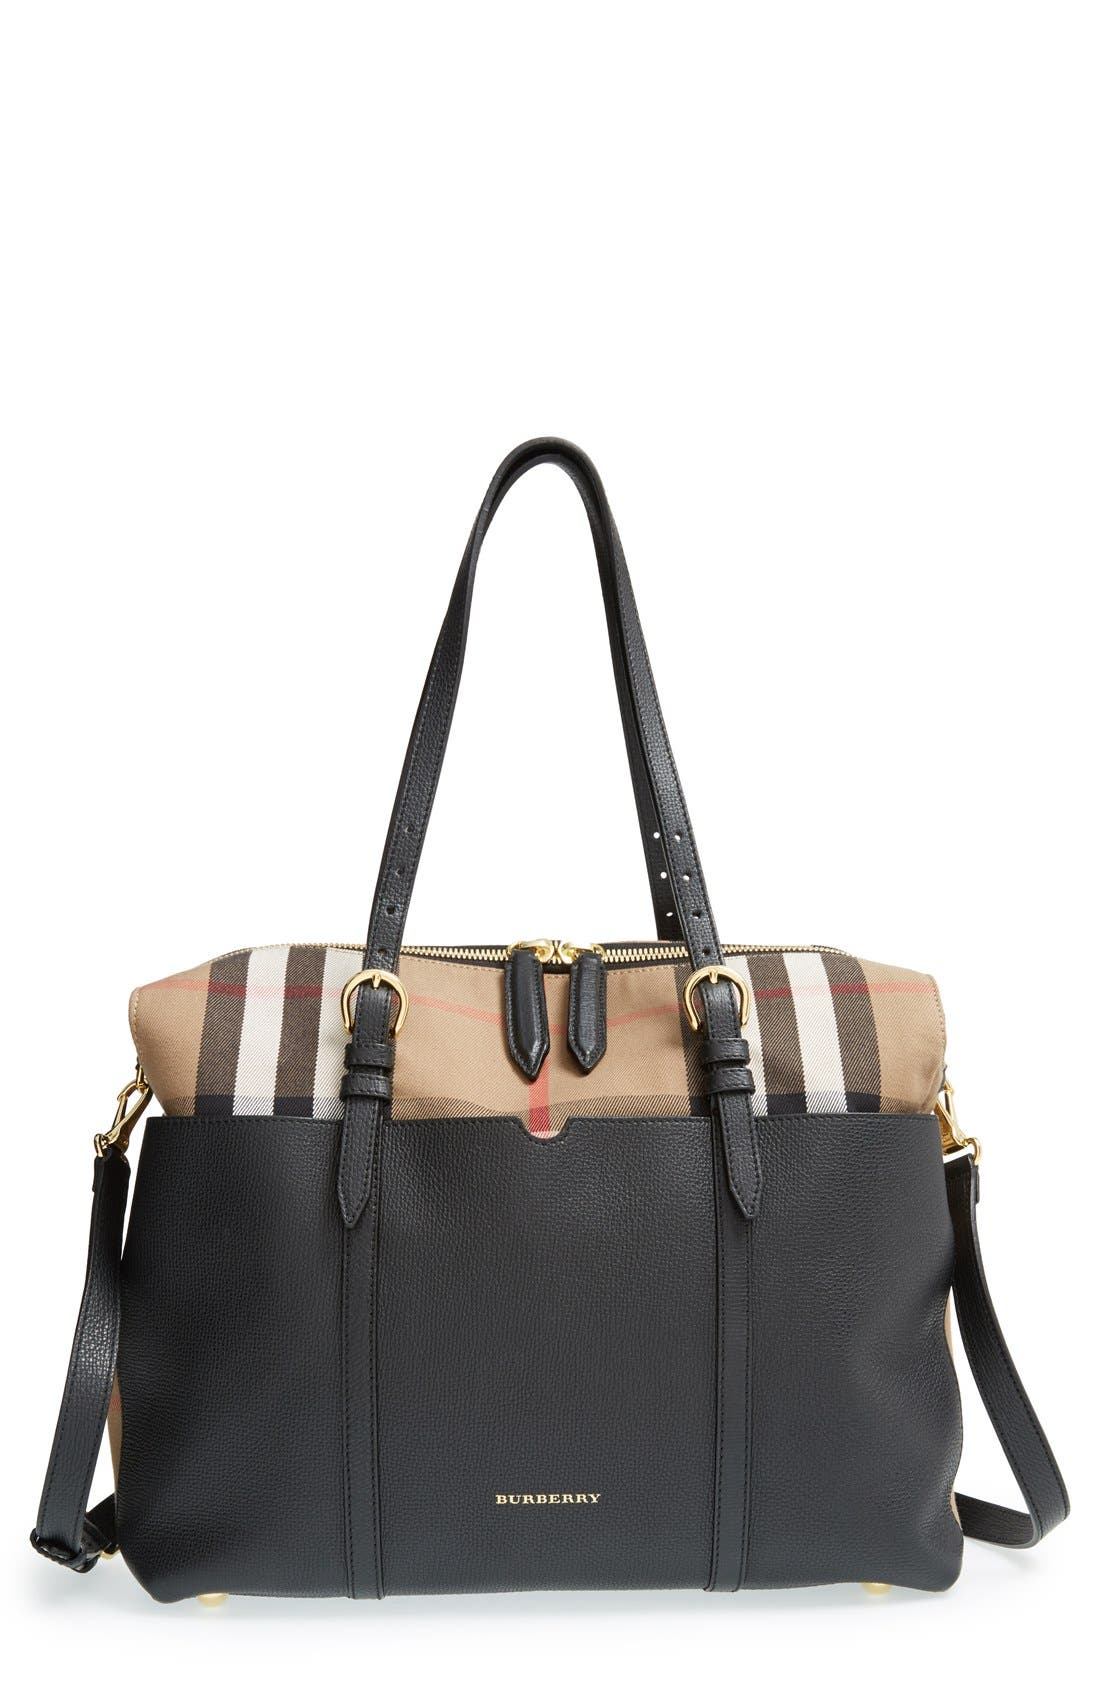 Burberry 'Mason - House Check' Diaper Bag